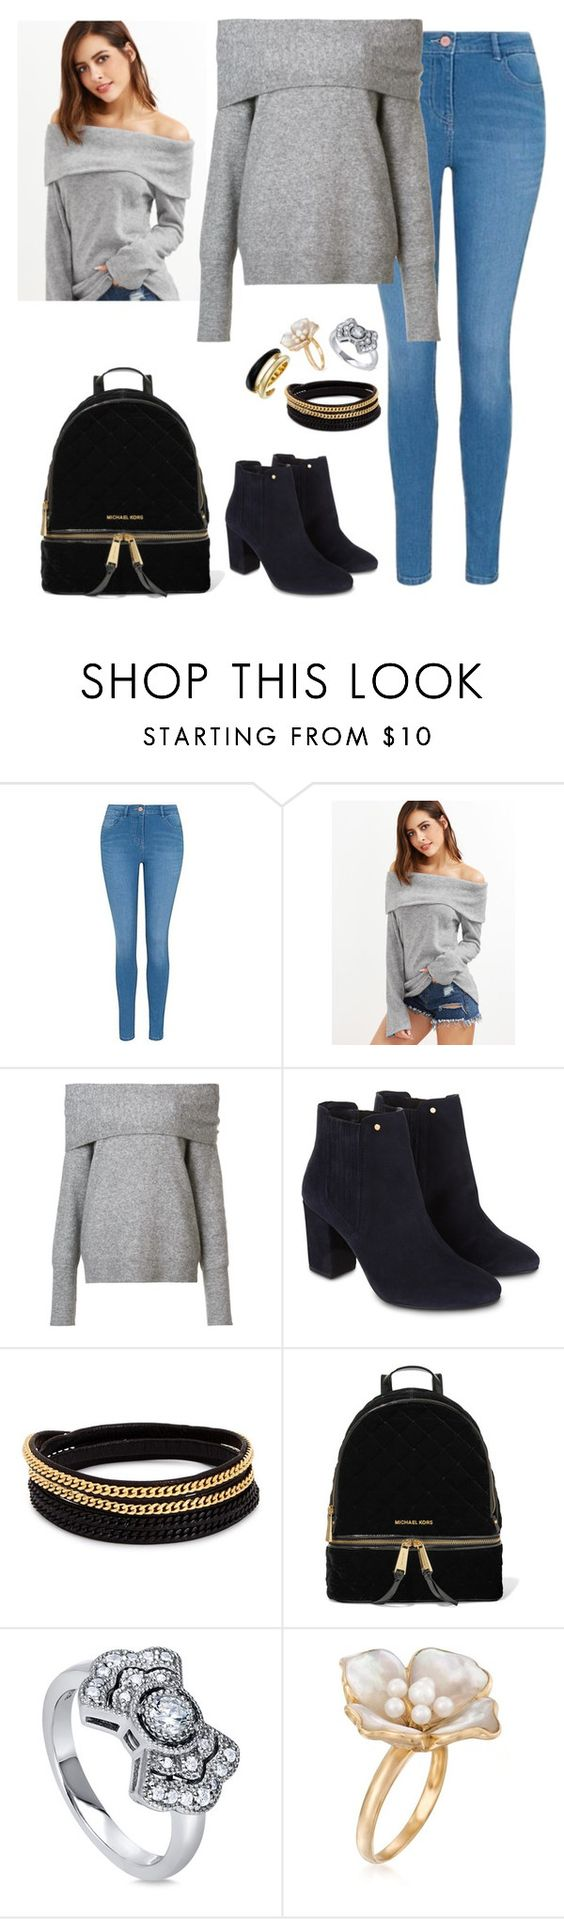 """""""you can everything..."""" by cecilialukas ❤ liked on Polyvore featuring George, Yigal AzrouÃ«l, Monsoon, Vita Fede, MICHAEL Michael Kors, BERRICLE, Ross-Simons and Michael Kors"""